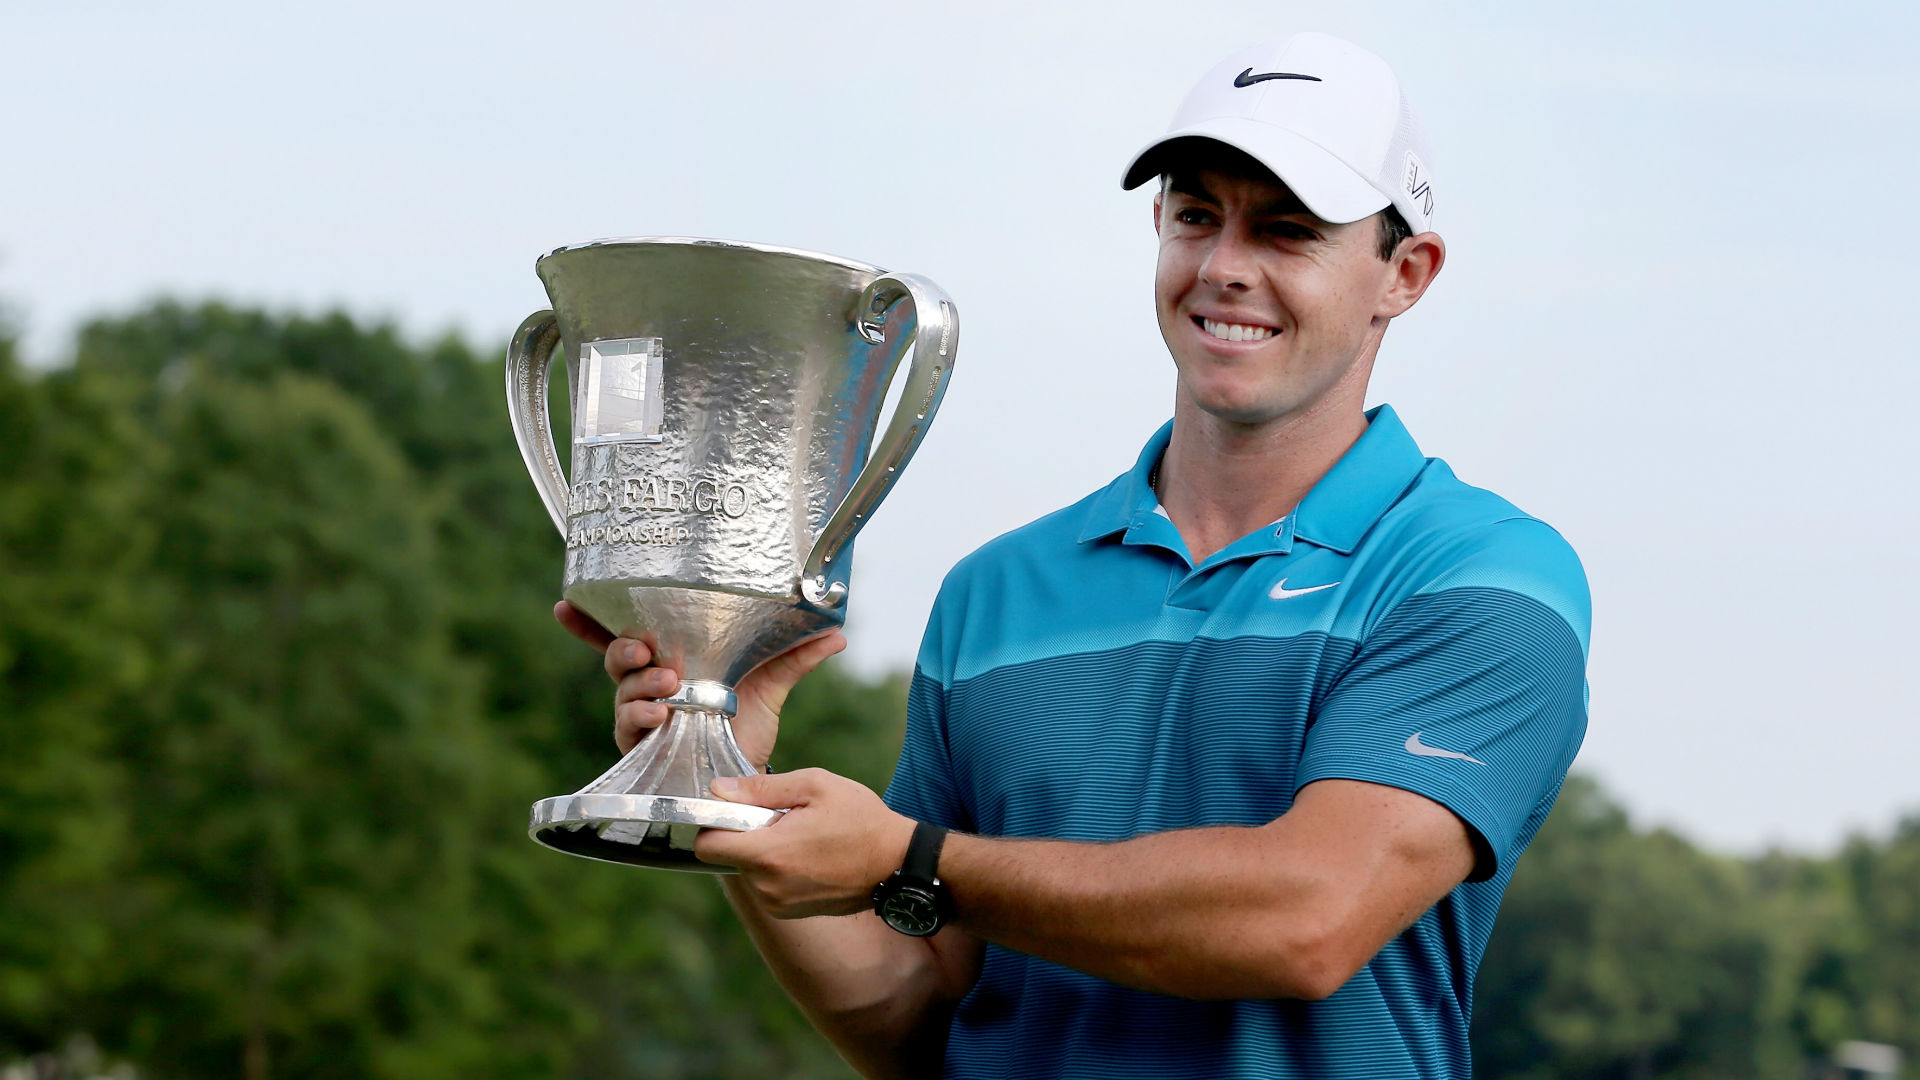 McIlroy-Rory-2-05172015-US-News-Getty-FTR